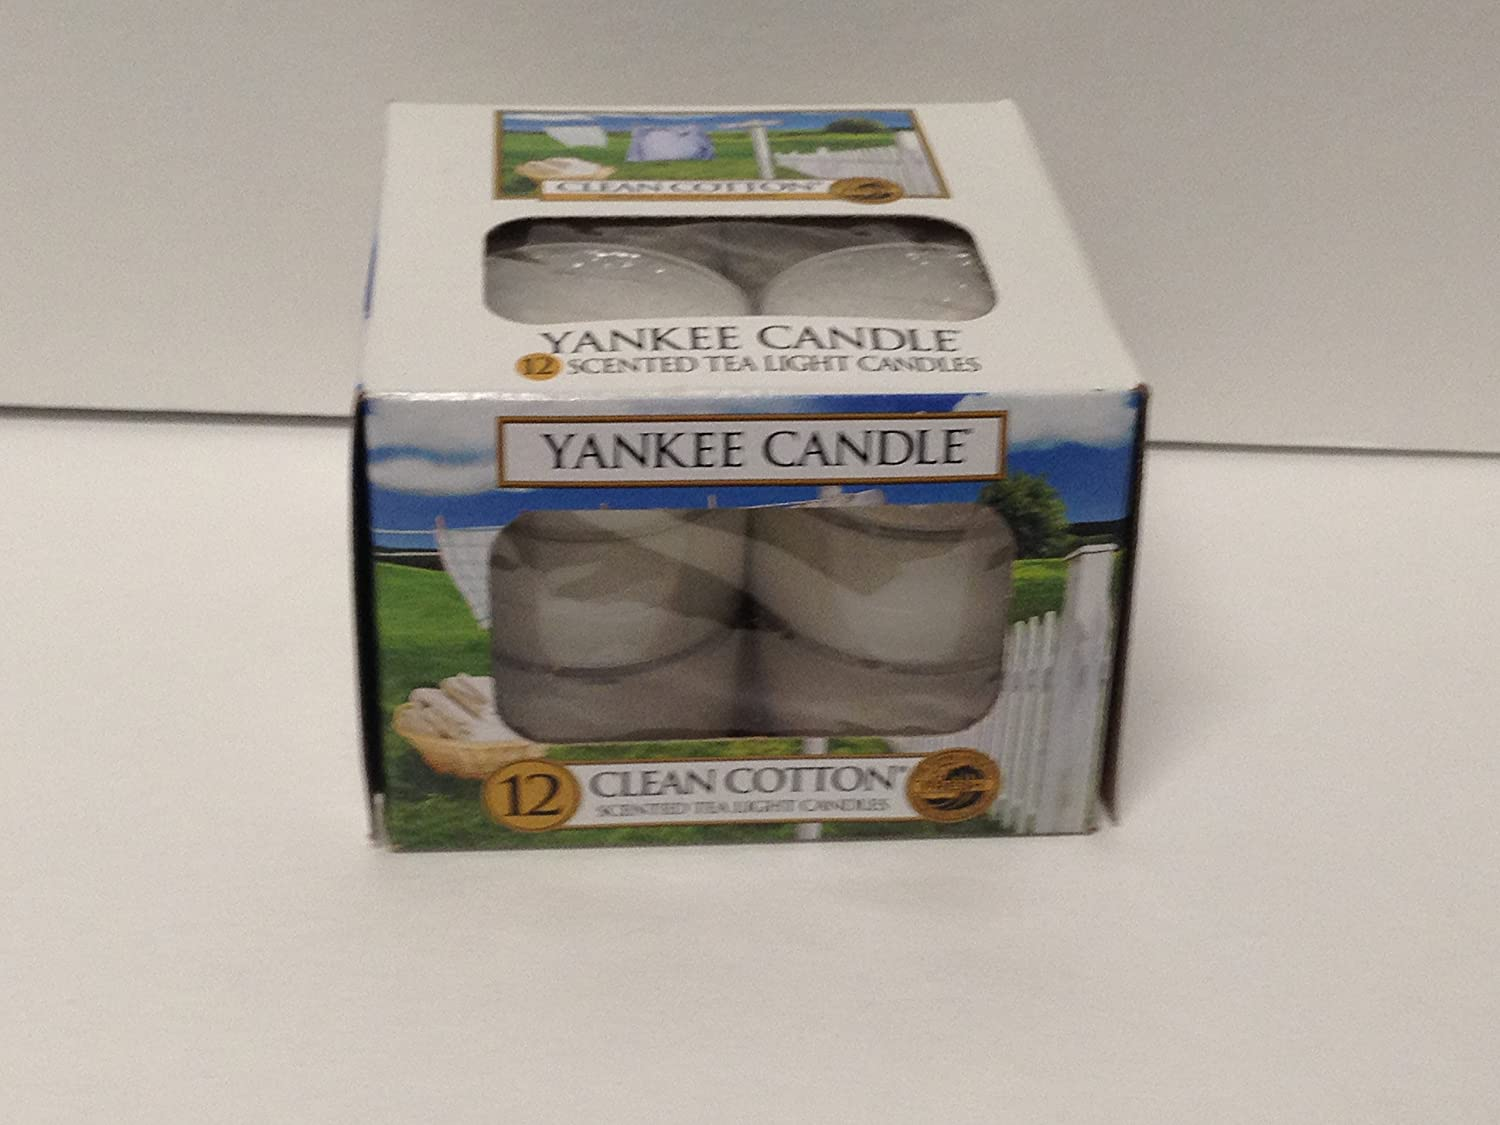 Yankee Candle Touffu Towles lumignons 12st 118 G